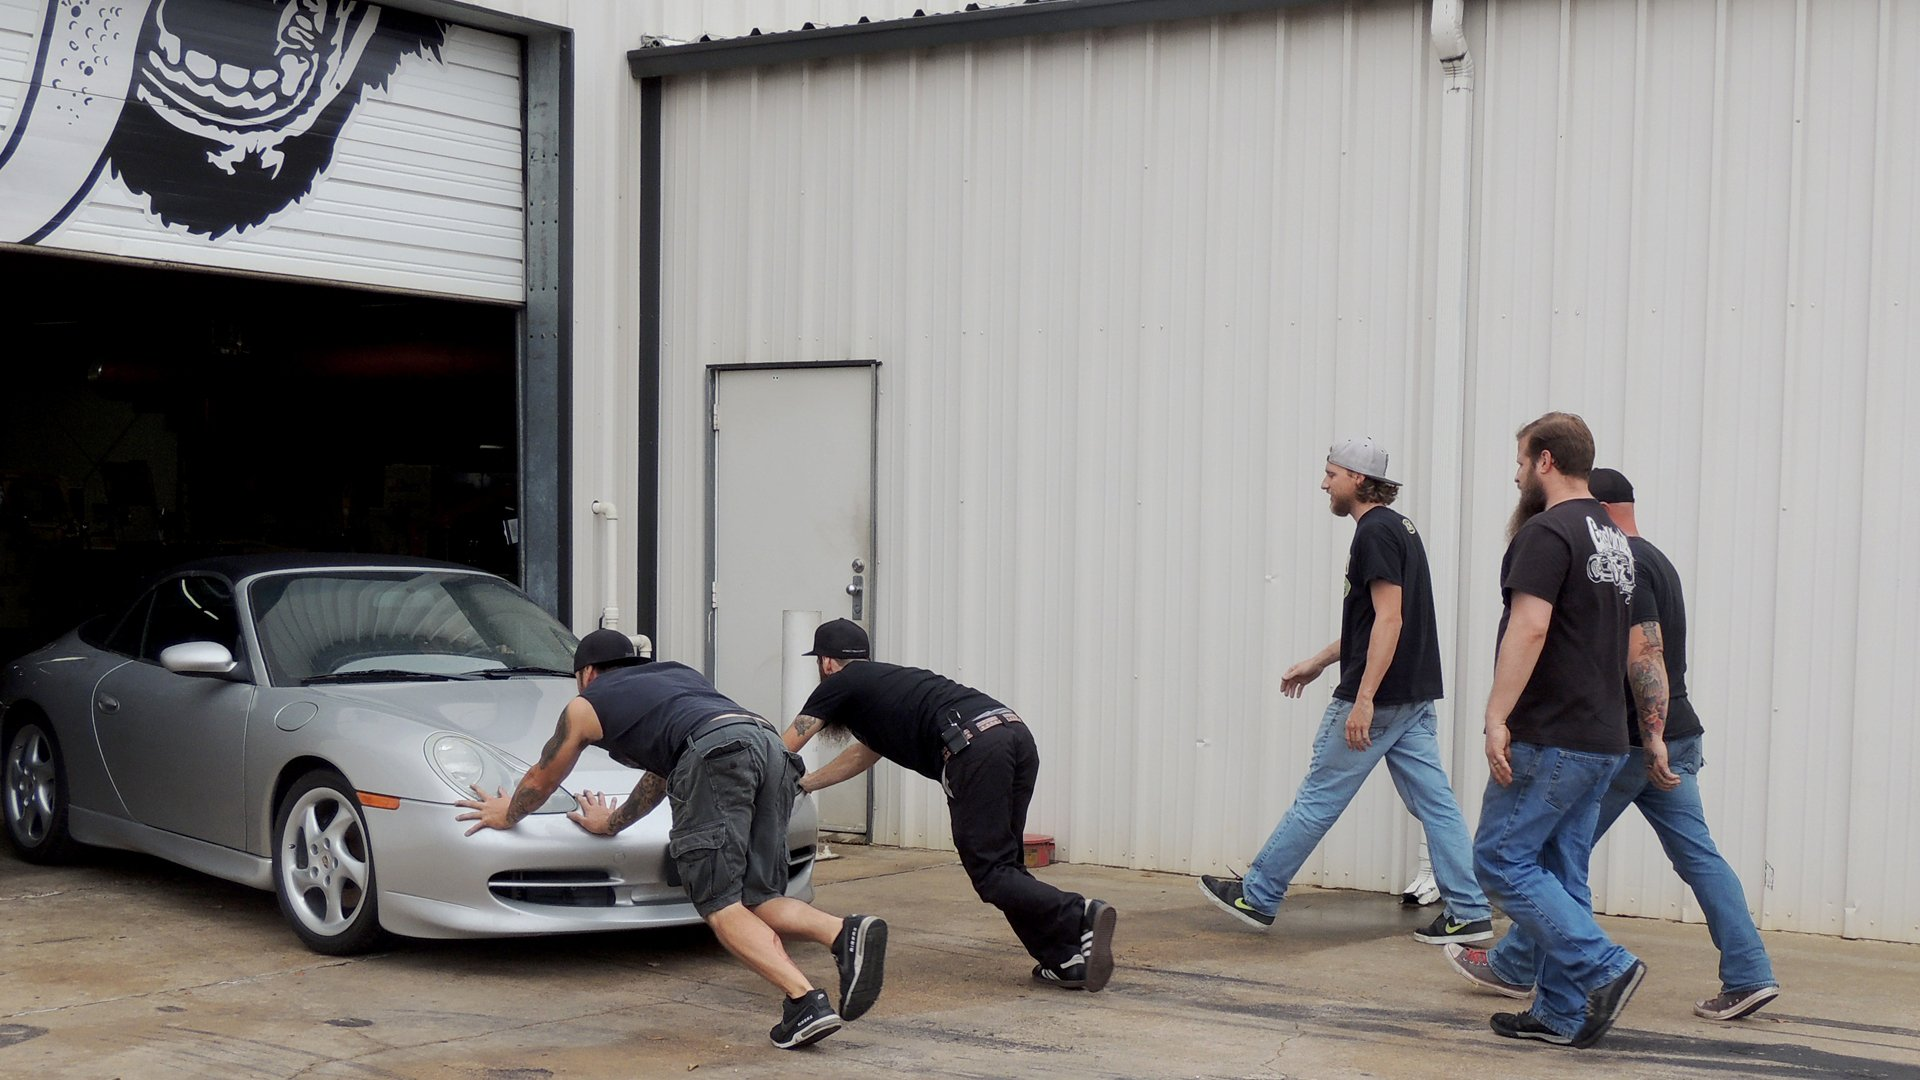 Fast N Loud 11 Episode 8 This Is So Farfegnugen Motortrend Whether or not you actually like gingerbread cookies is kinda irrelevant. fast n loud 11 episode 8 this is